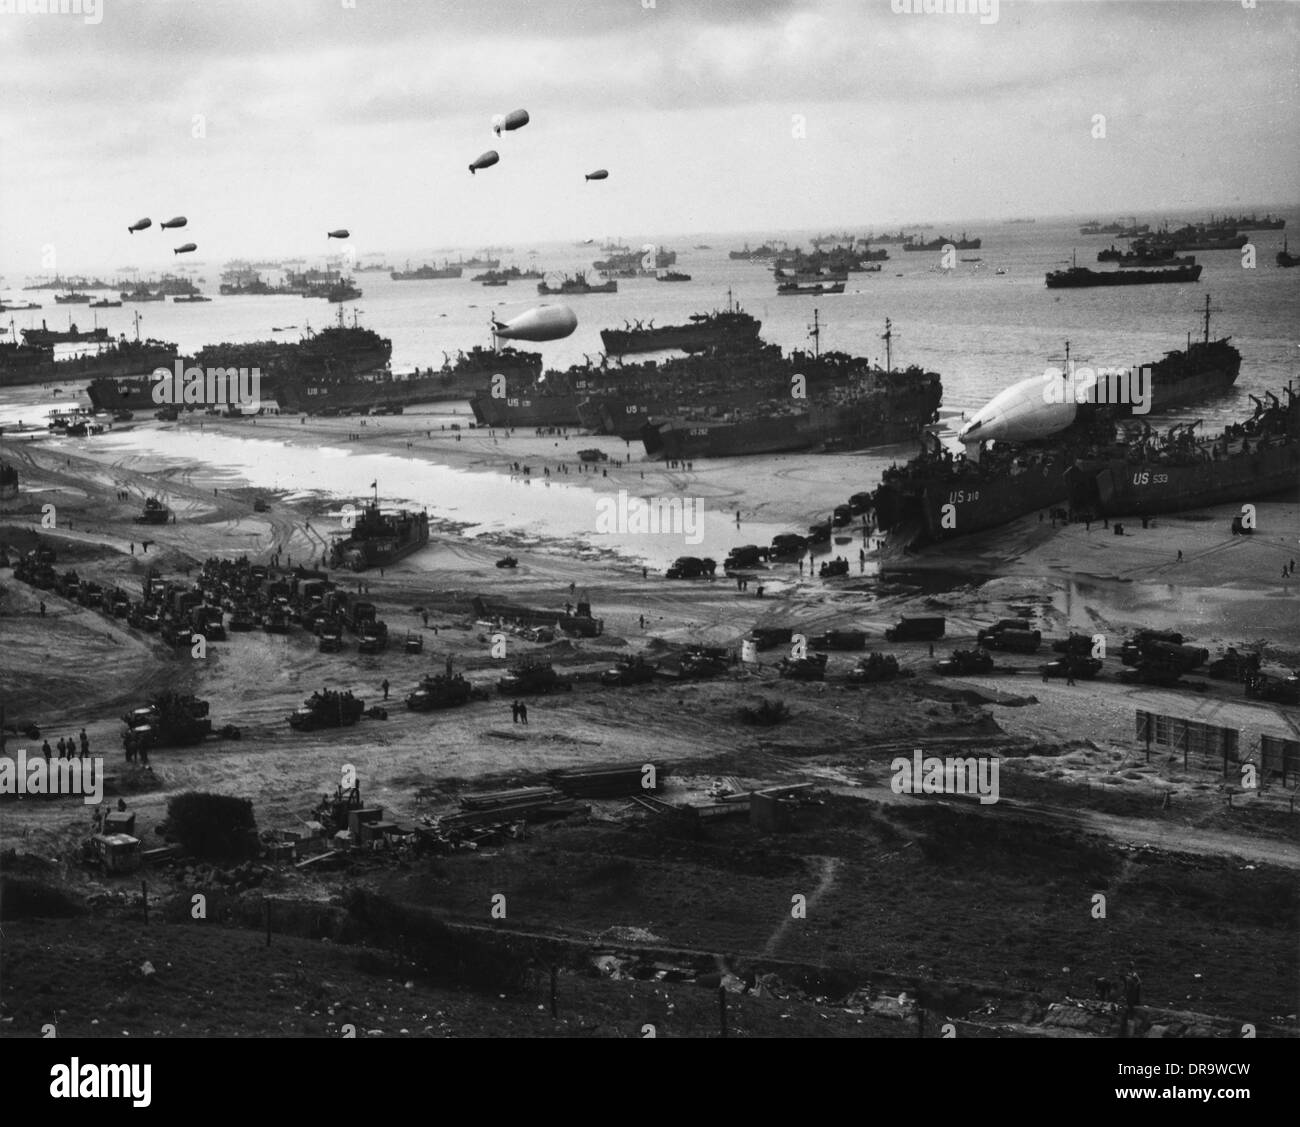 D-Day - Supplies pour ashore - Stock Image